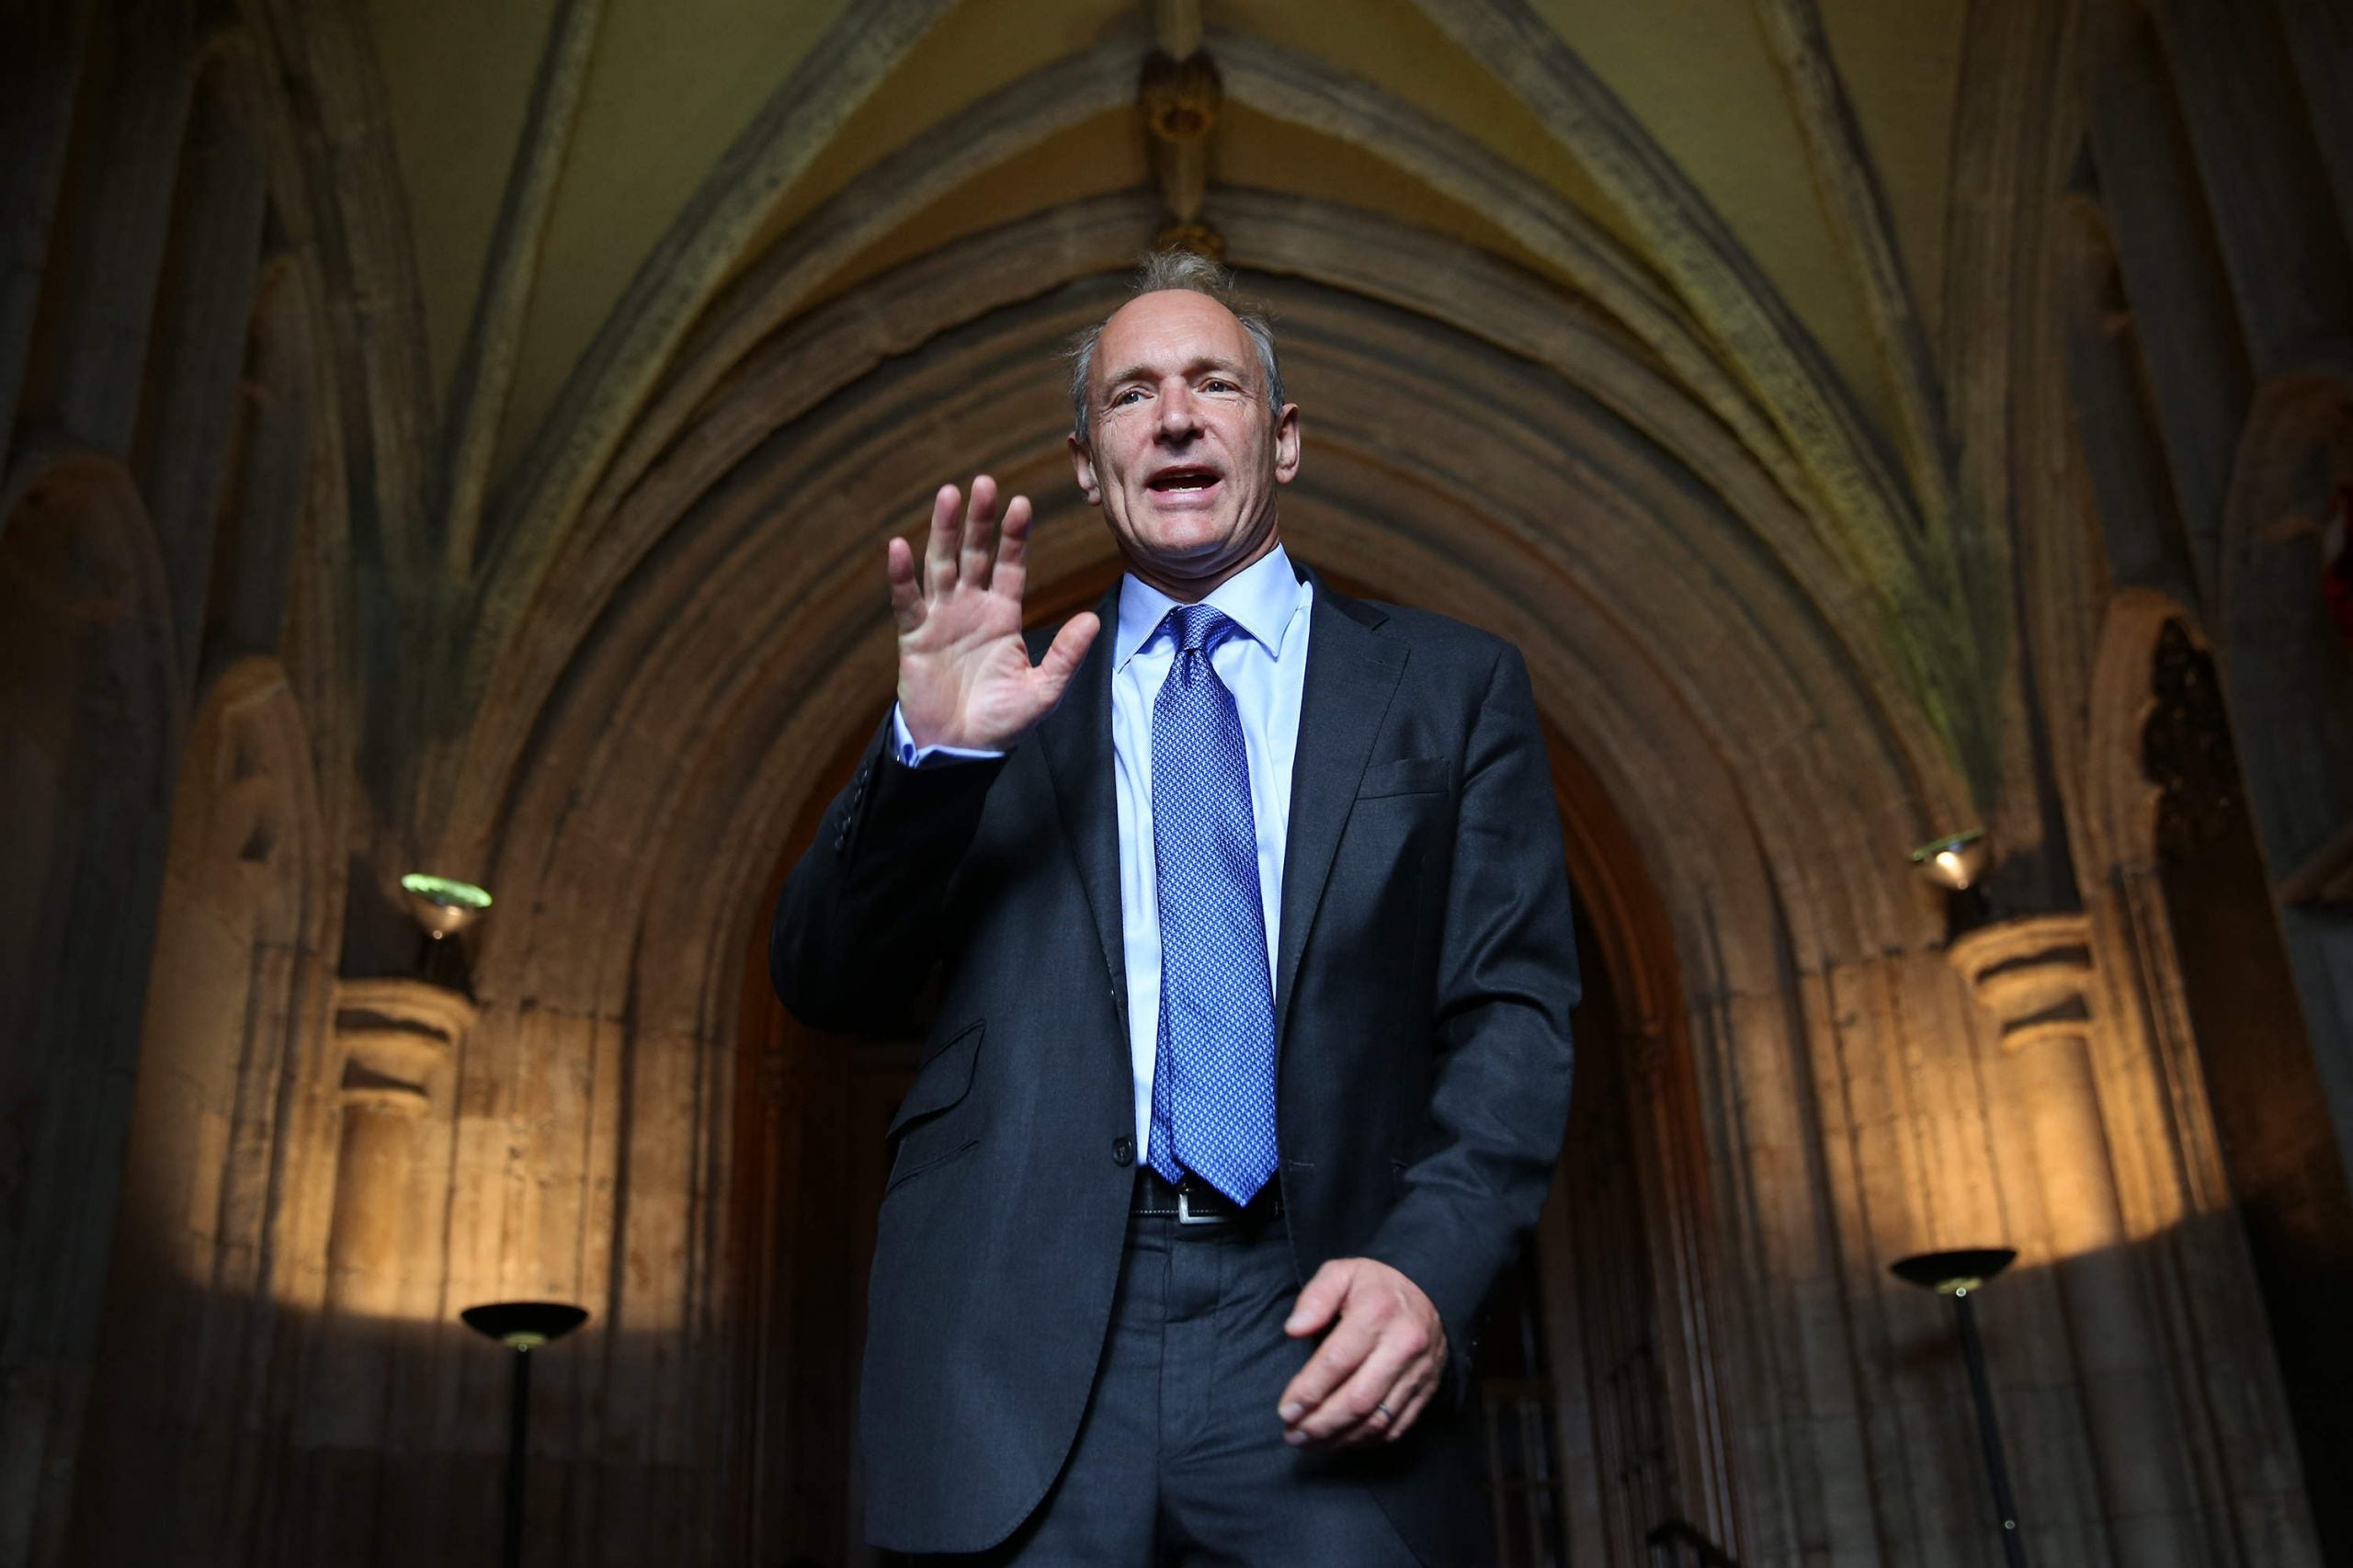 The NS Profile: Tim Berners-Lee